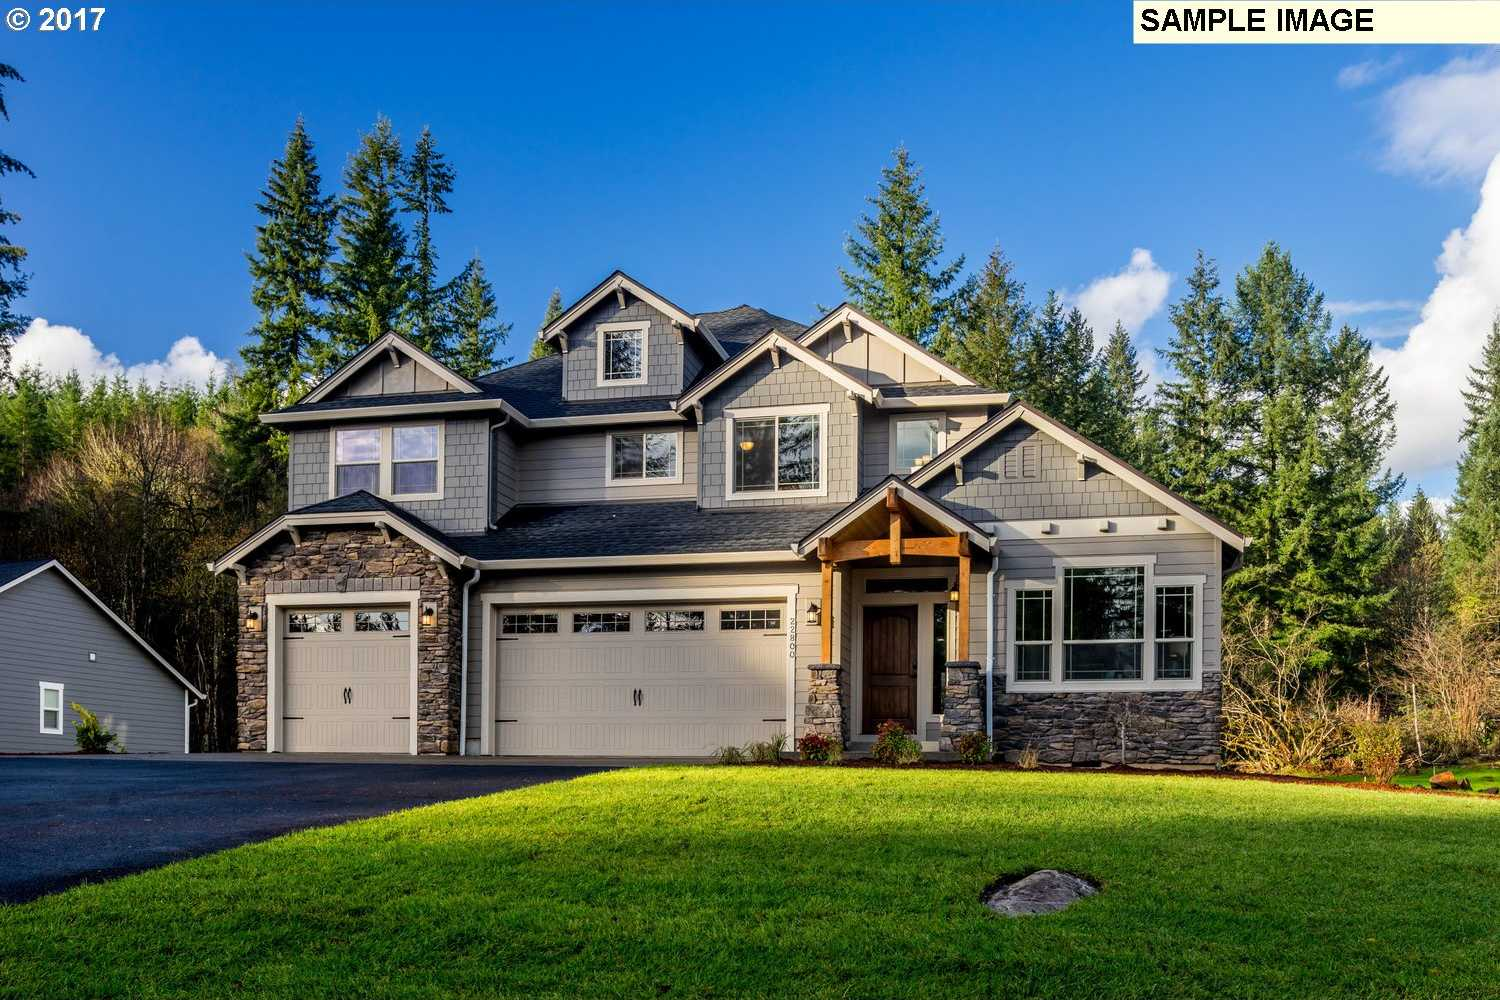 $657,000 - 4Br/3Ba -  for Sale in Gresham